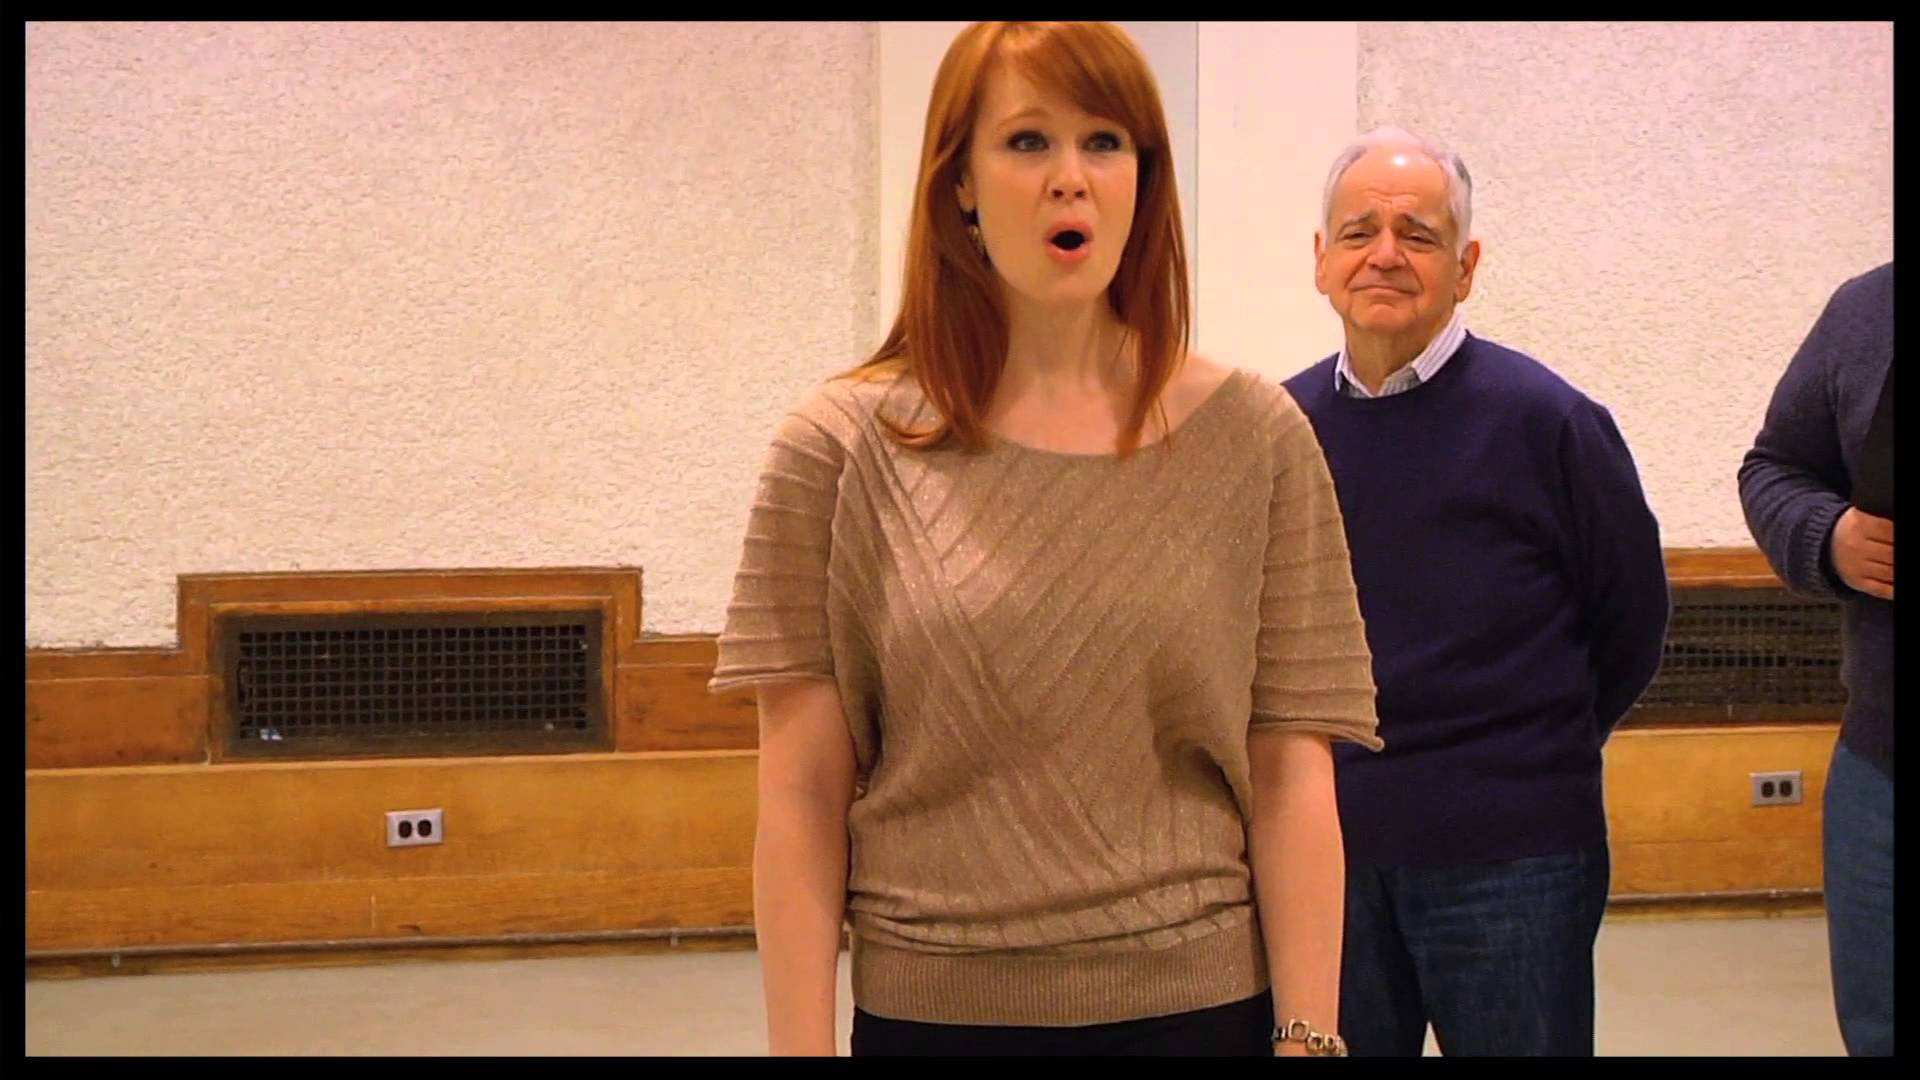 A look at rehearsals for Fiorello! at New York City Center's Encores!